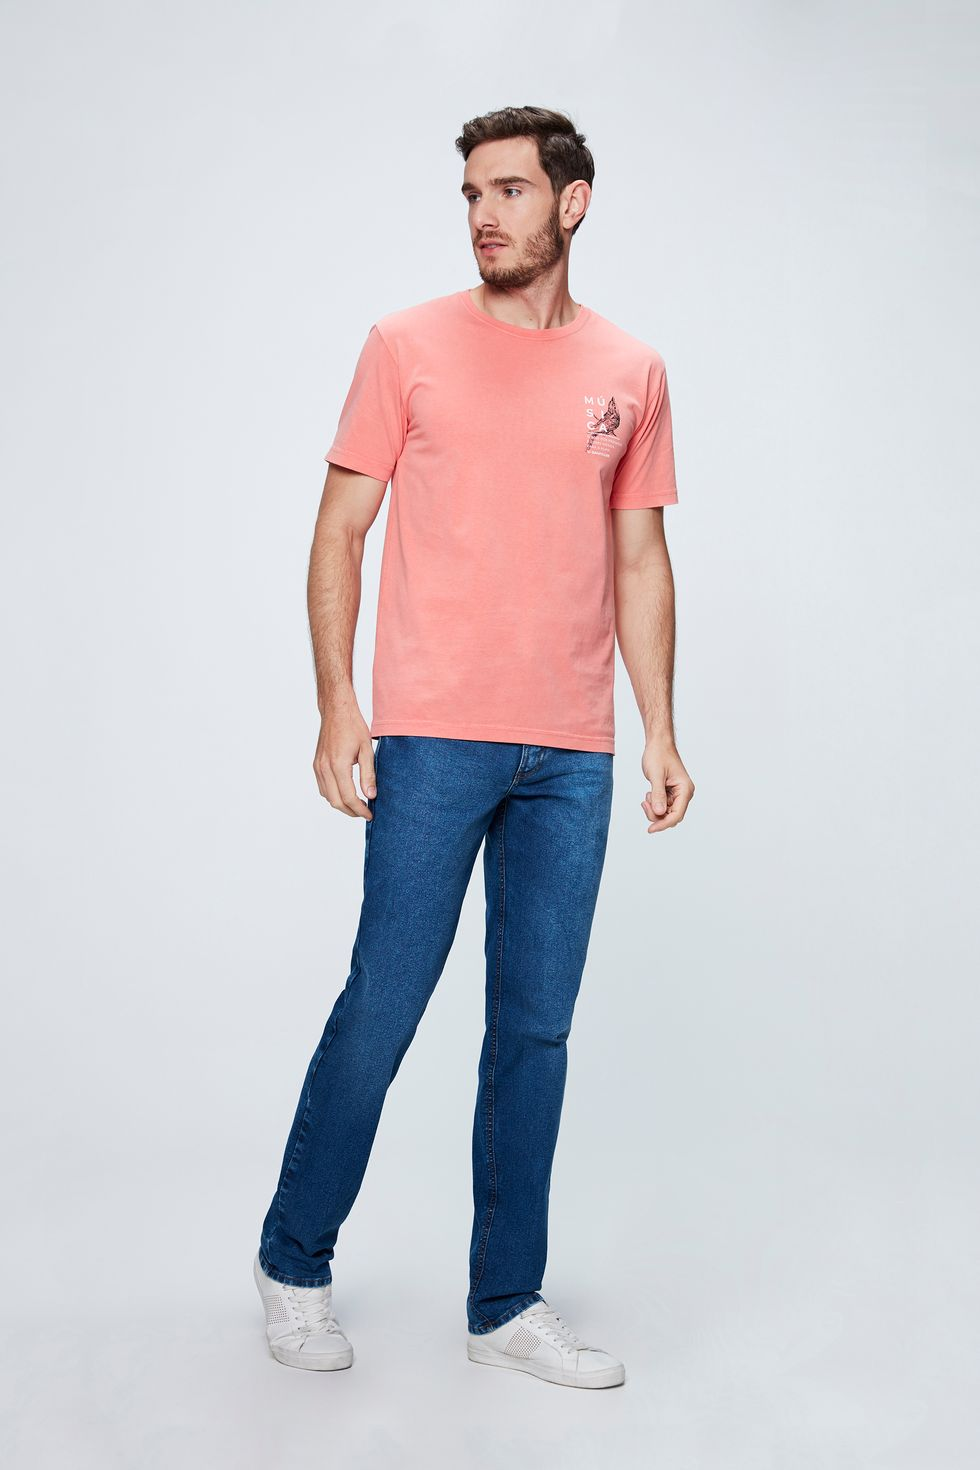 Look-Moderno-Camiseta-com-Estampa